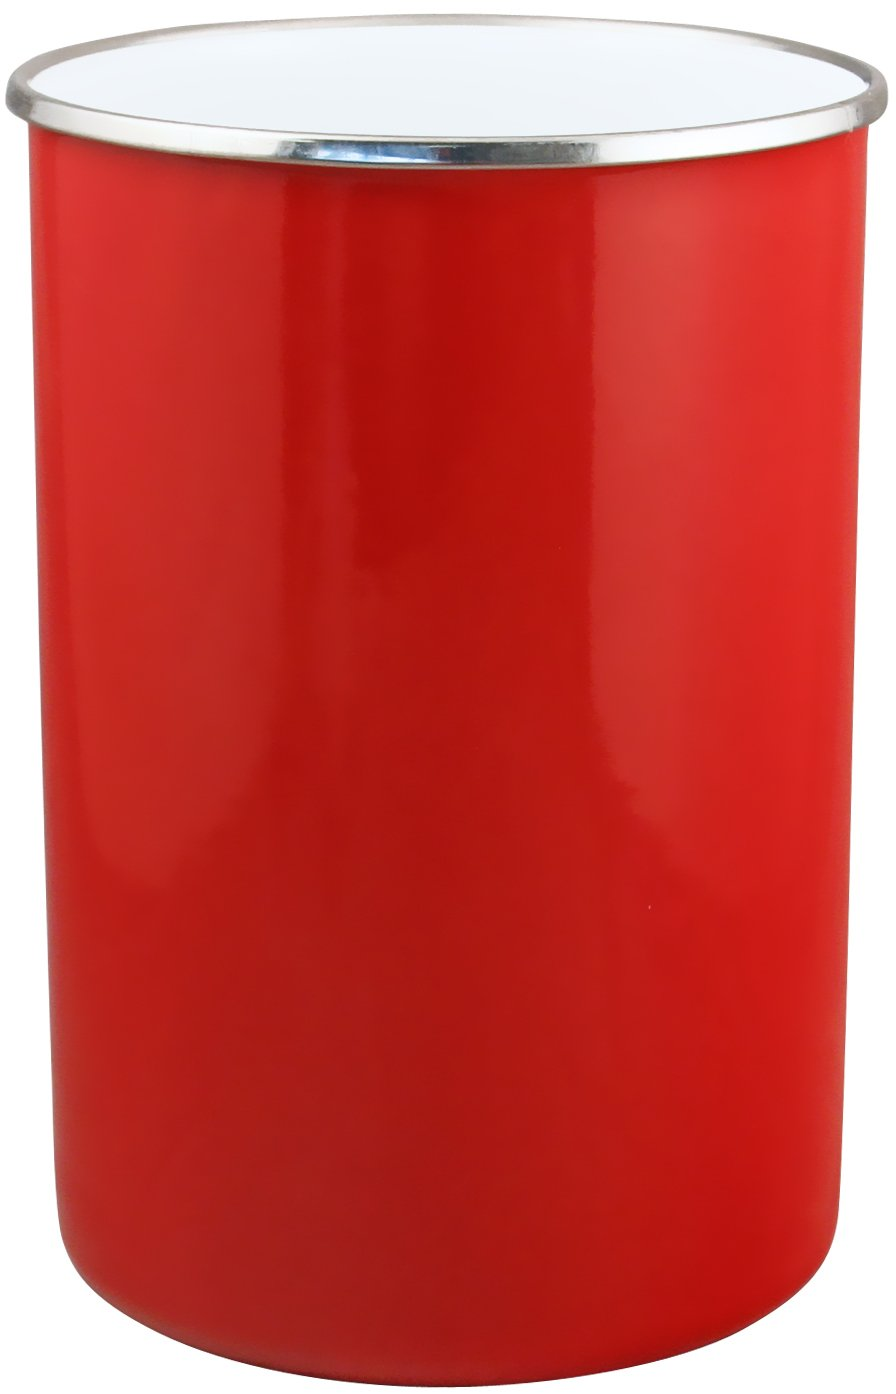 Reston Lloyd 82600 Calypso Basics Utensil Holder, Red